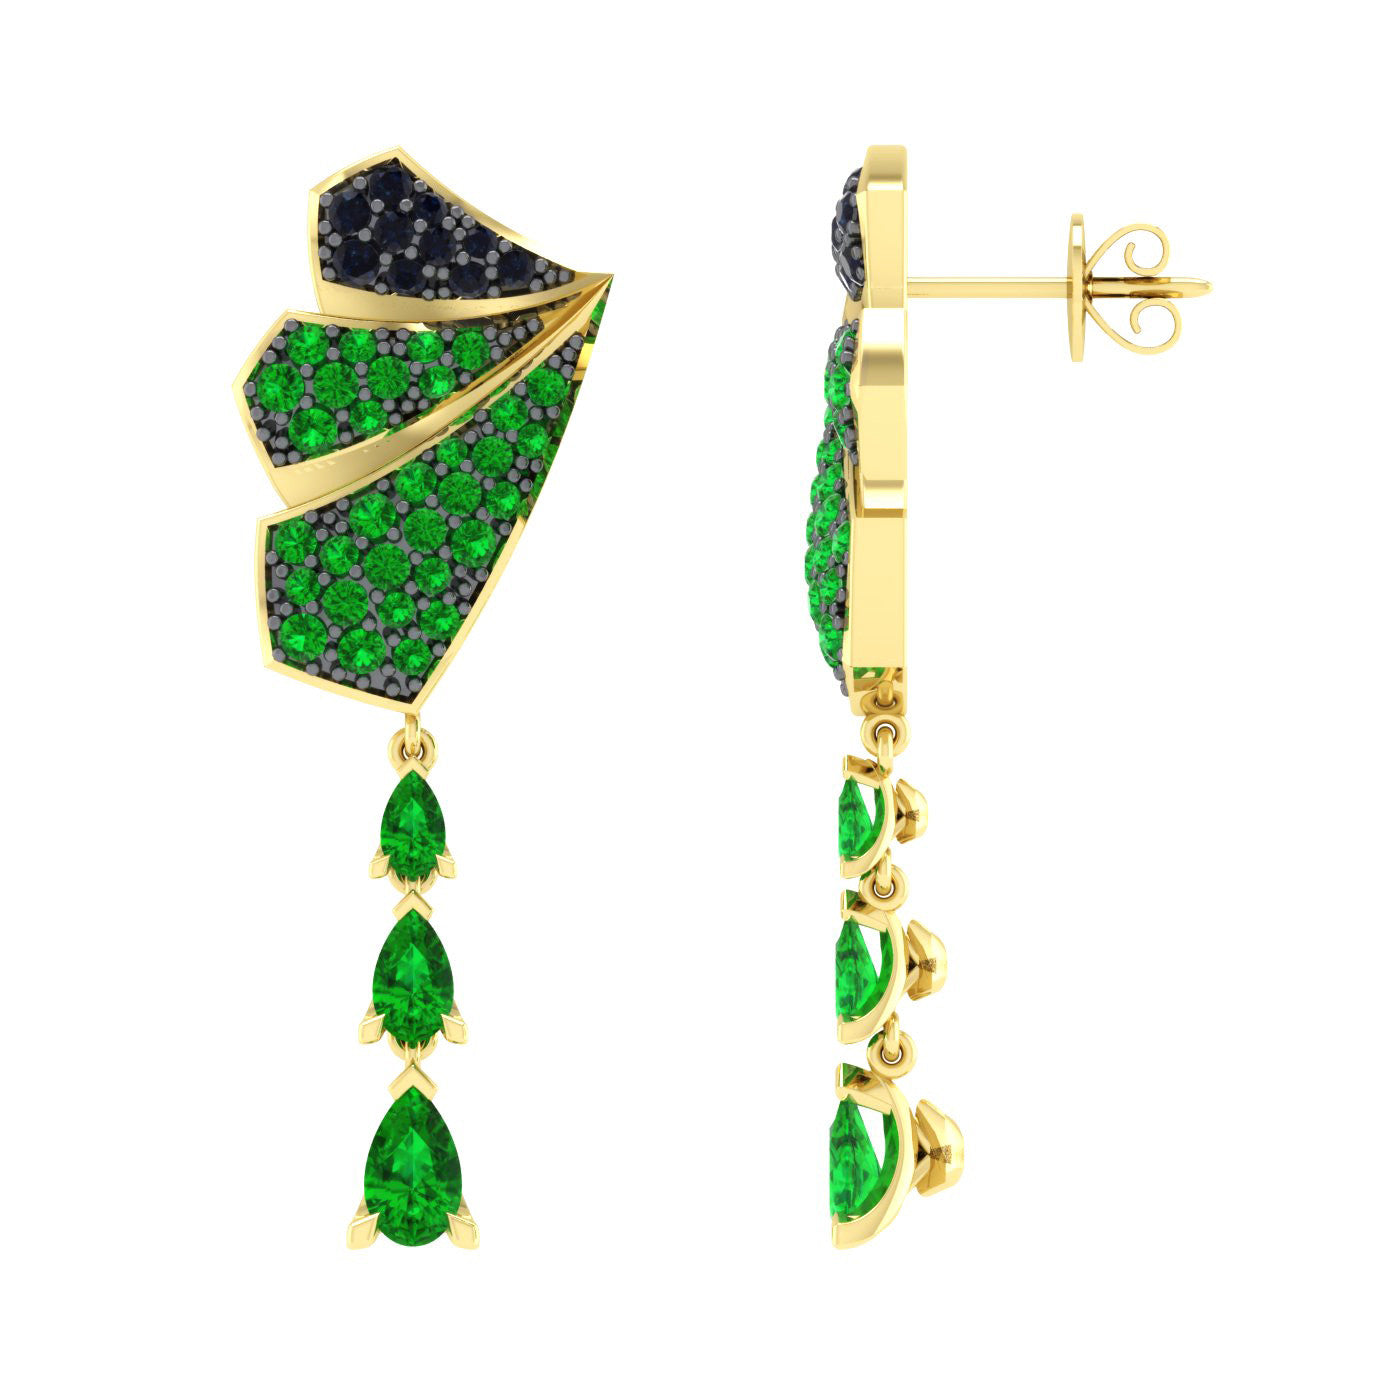 Sapphire and Tsavorite Earrings in 18kt Gold